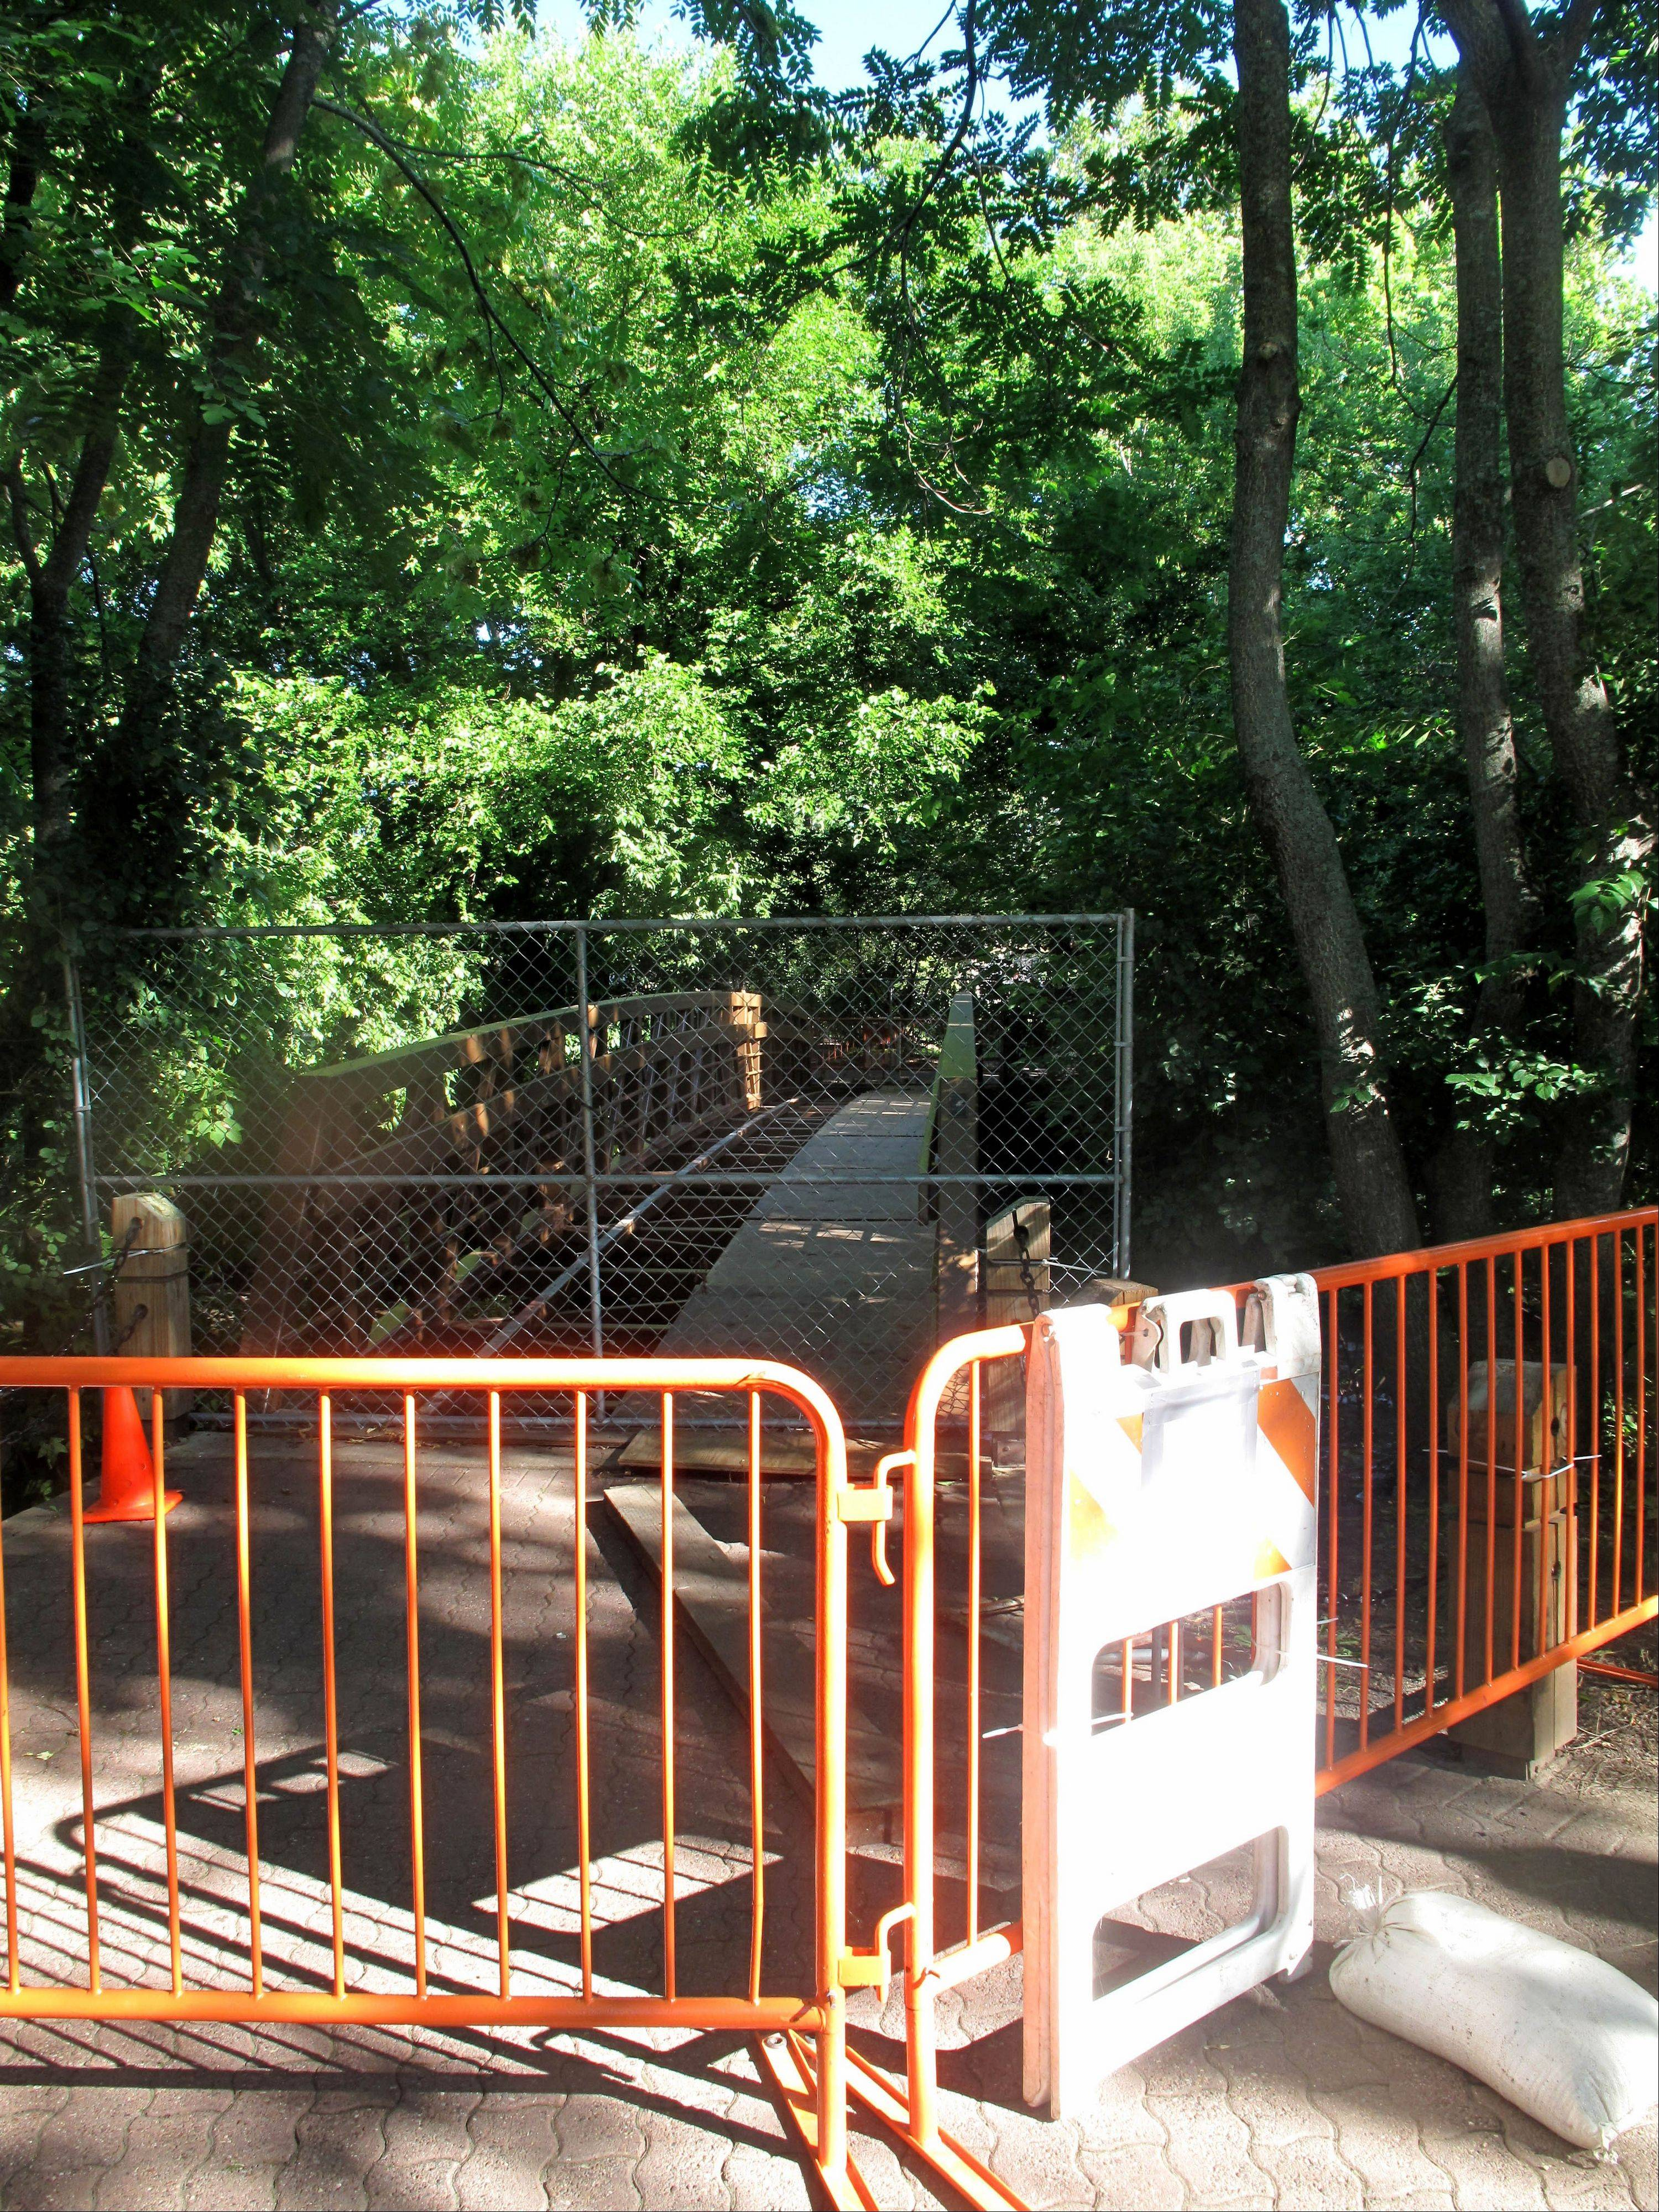 The bridge on the Naperville Riverwalk between the Millennium Carillon Visitors Center and Centennial Beach is closed for maintenance, but park district crews aim to have a temporary fix in place by the beginning of the Jaycees' Last Fling on Friday, Aug. 30.